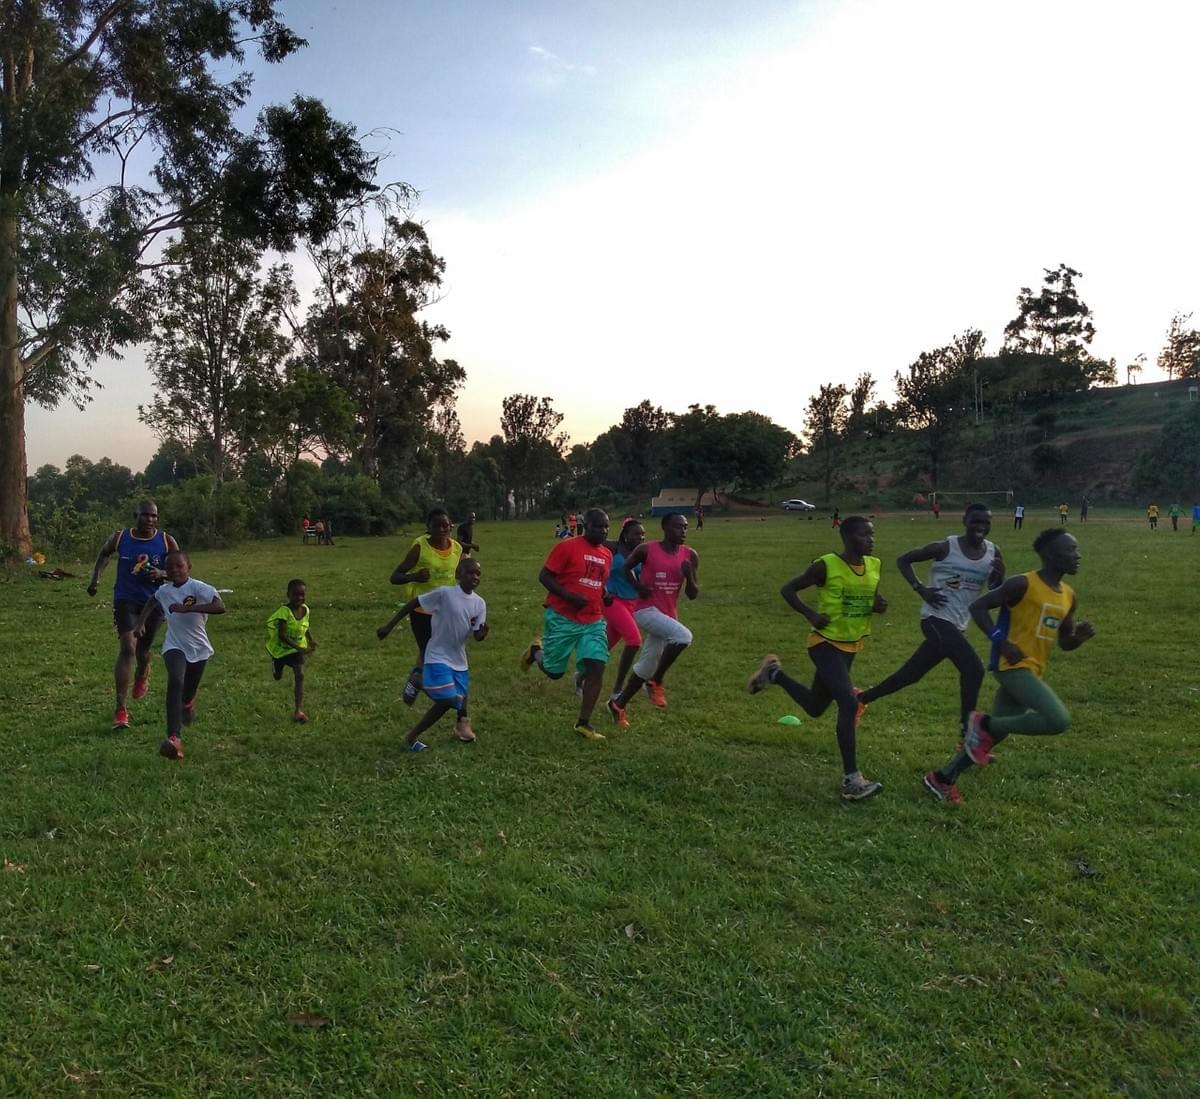 A group of local runners from young children to adults embark on an interval session on a sports field in Masaka, Uganda